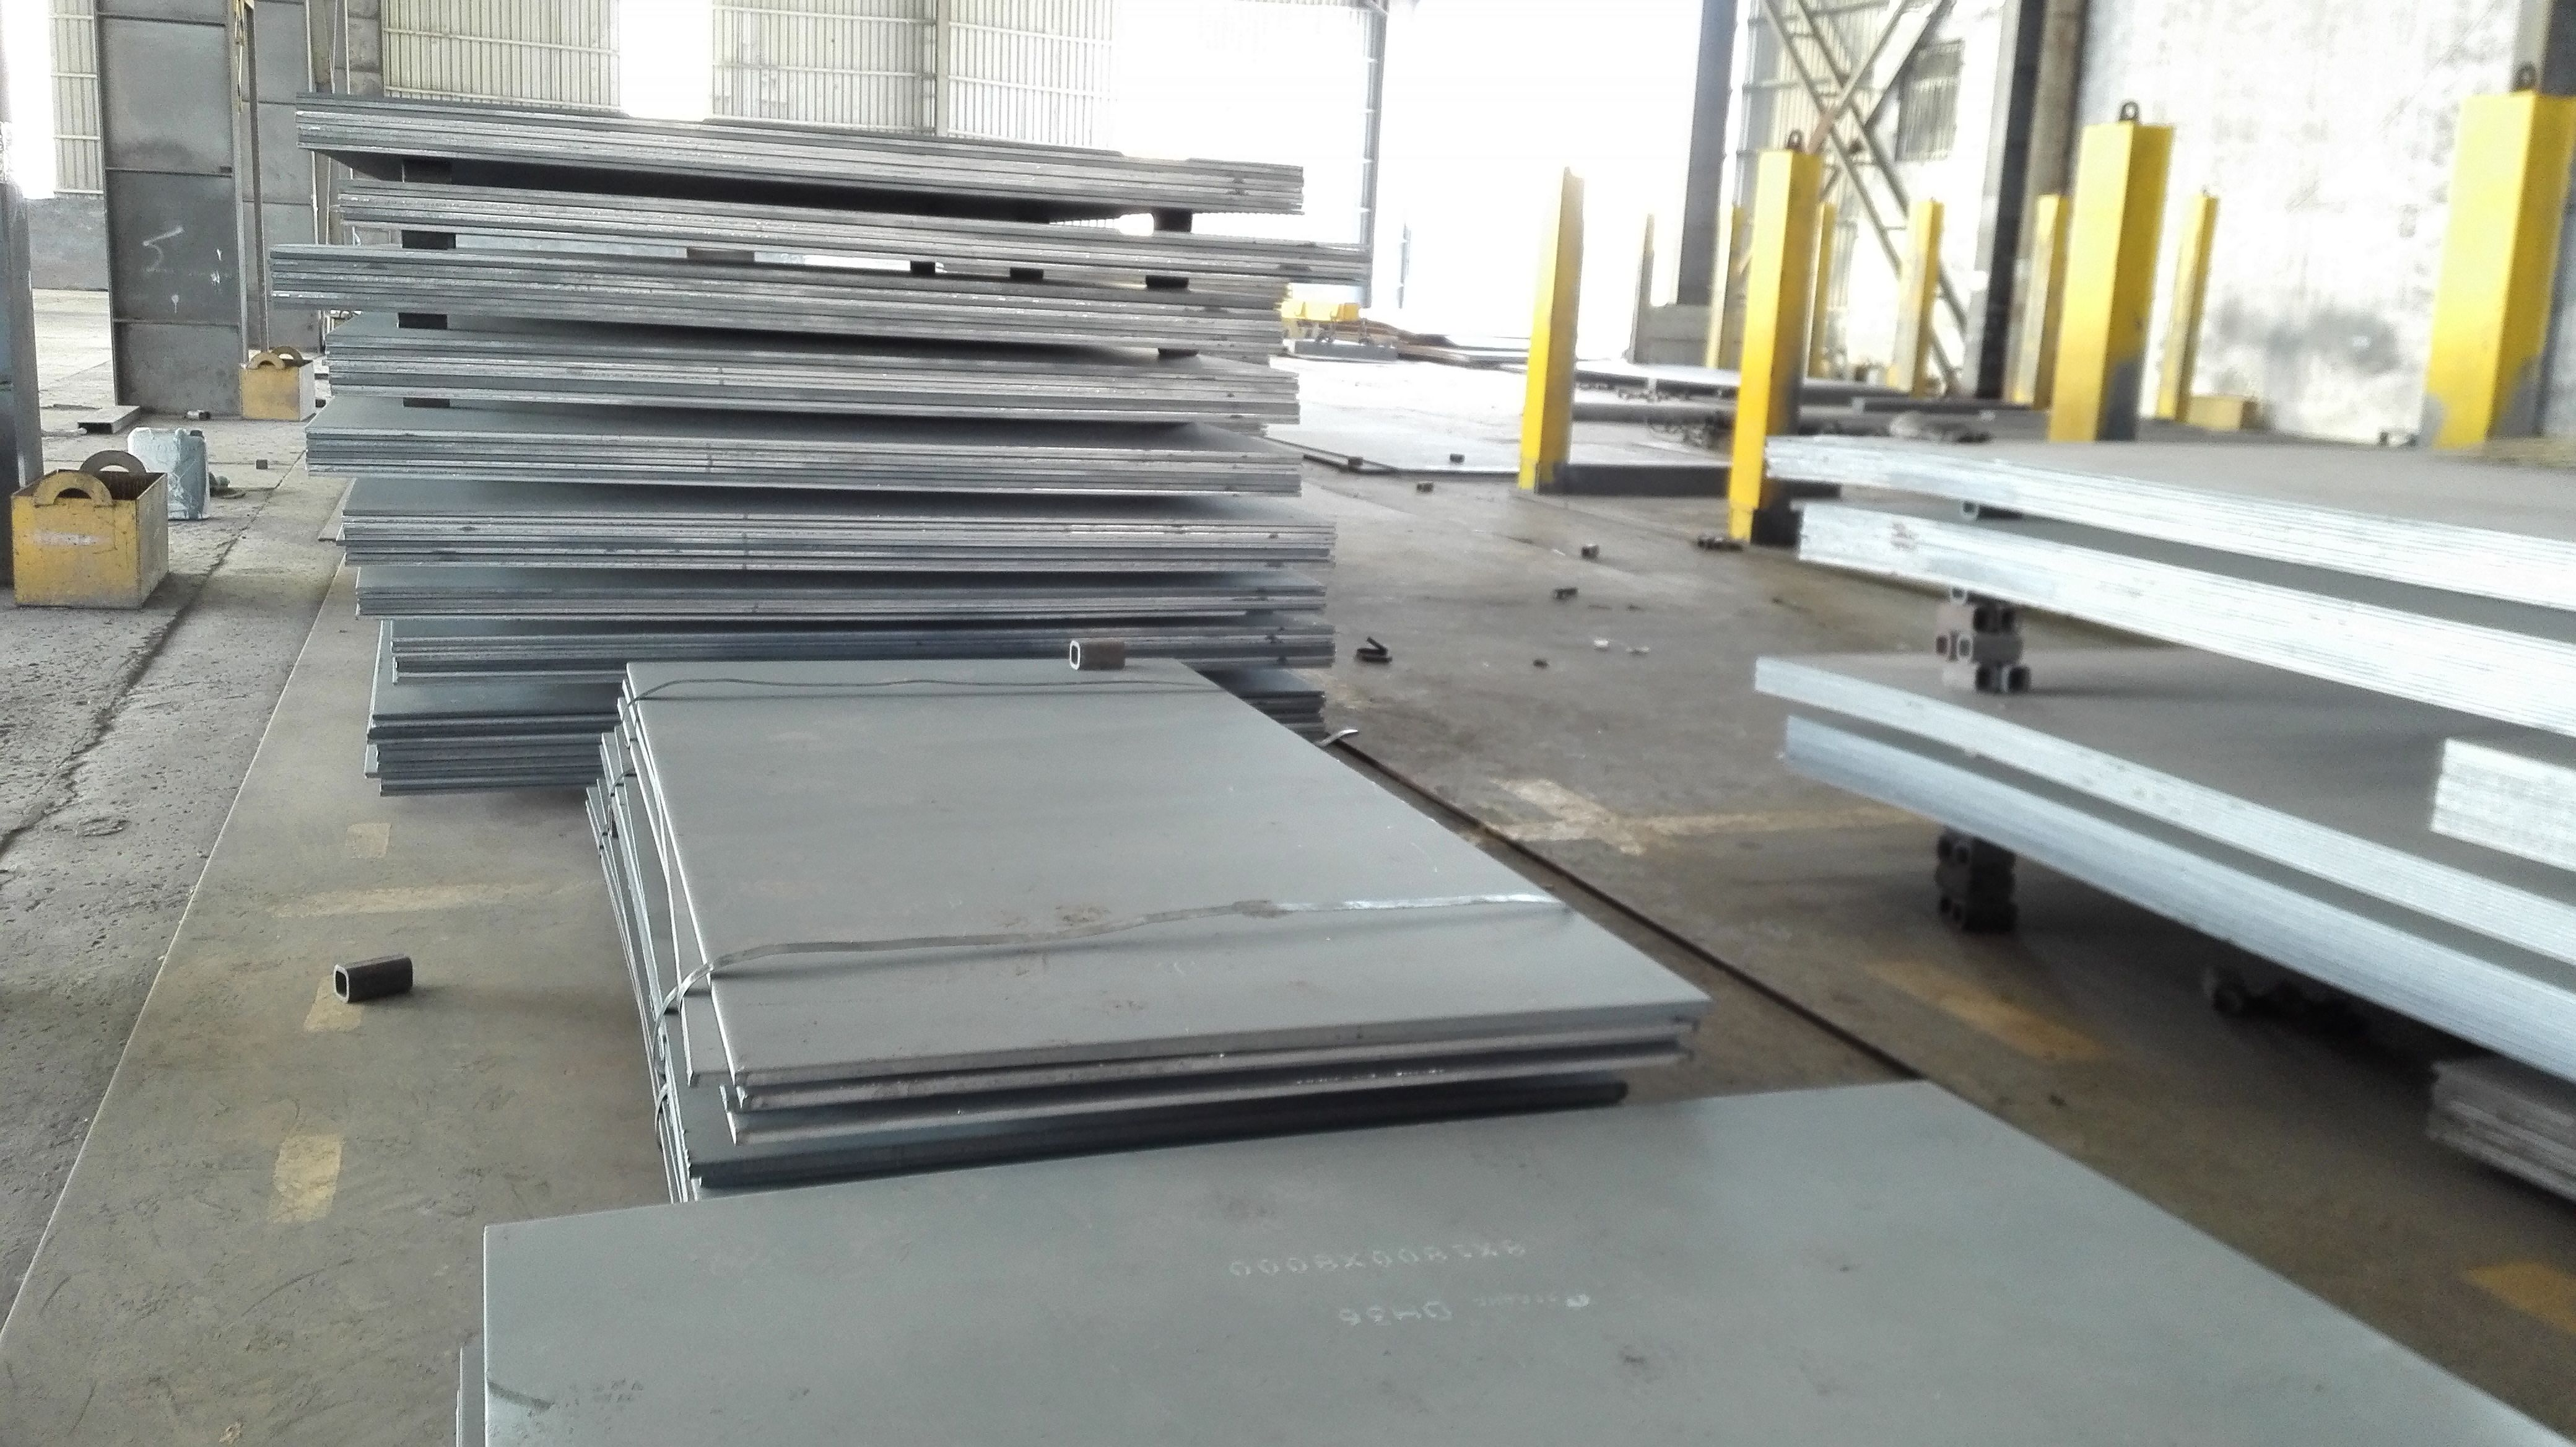 Lr Grade A Shipbuilding Steel Plate Specification Thickness 3mm To 150mm Width 1220mm To 4200m Length 5000mm To 18000mm Steel Plate Steel Plates